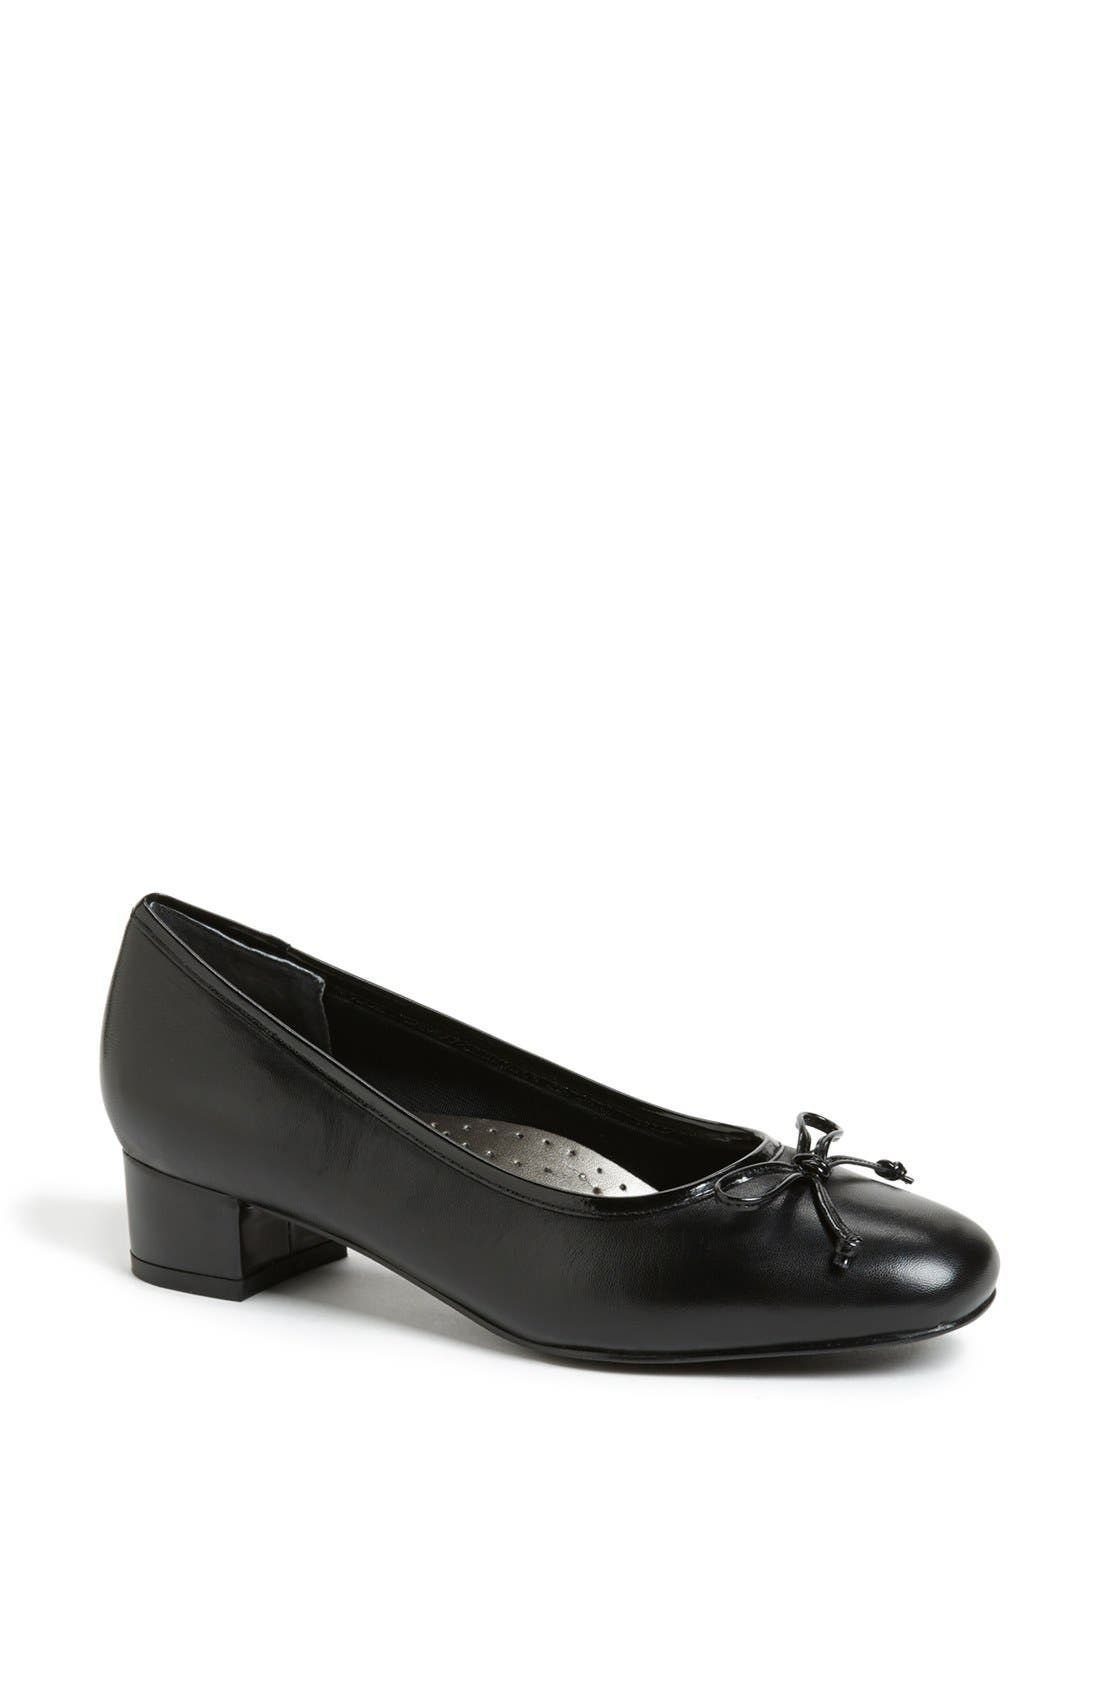 Alternate Image 1 Selected - Trotters 'Demi' Pump